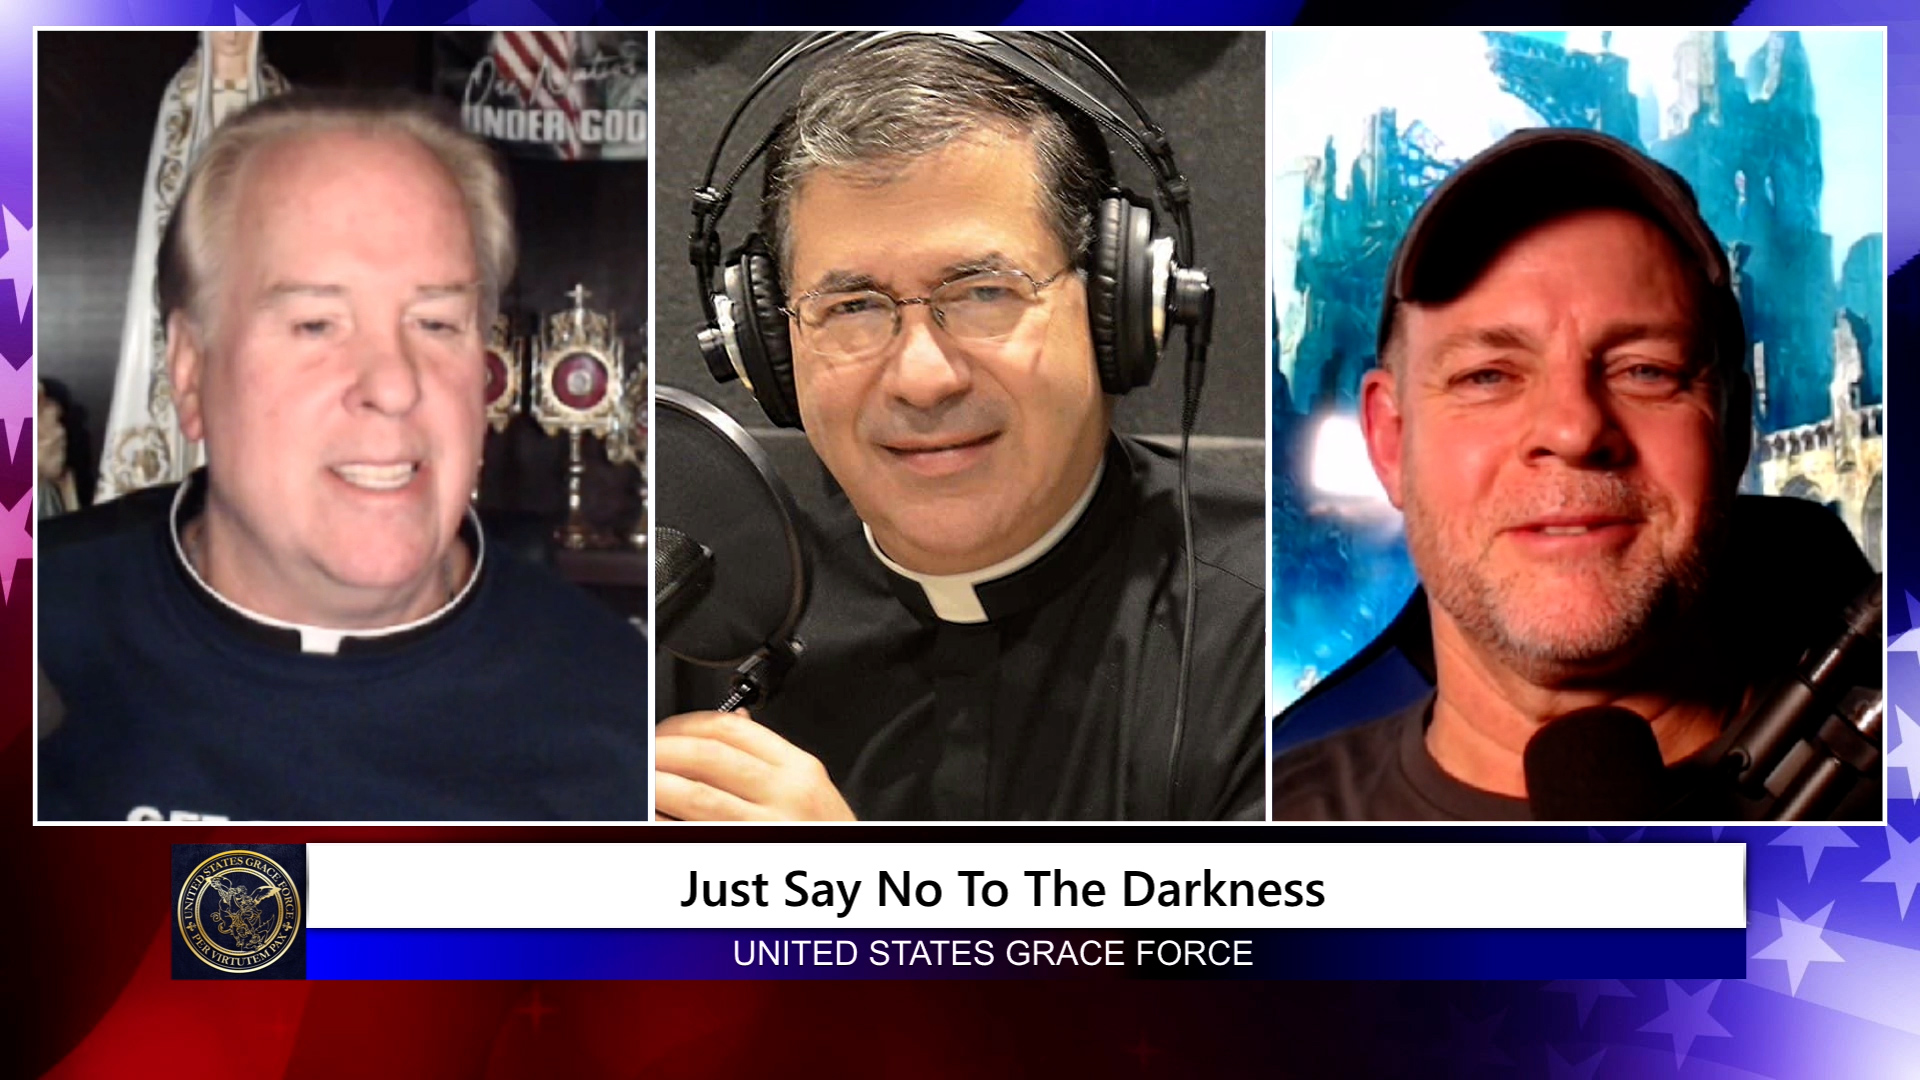 Just Say No To The Darkness